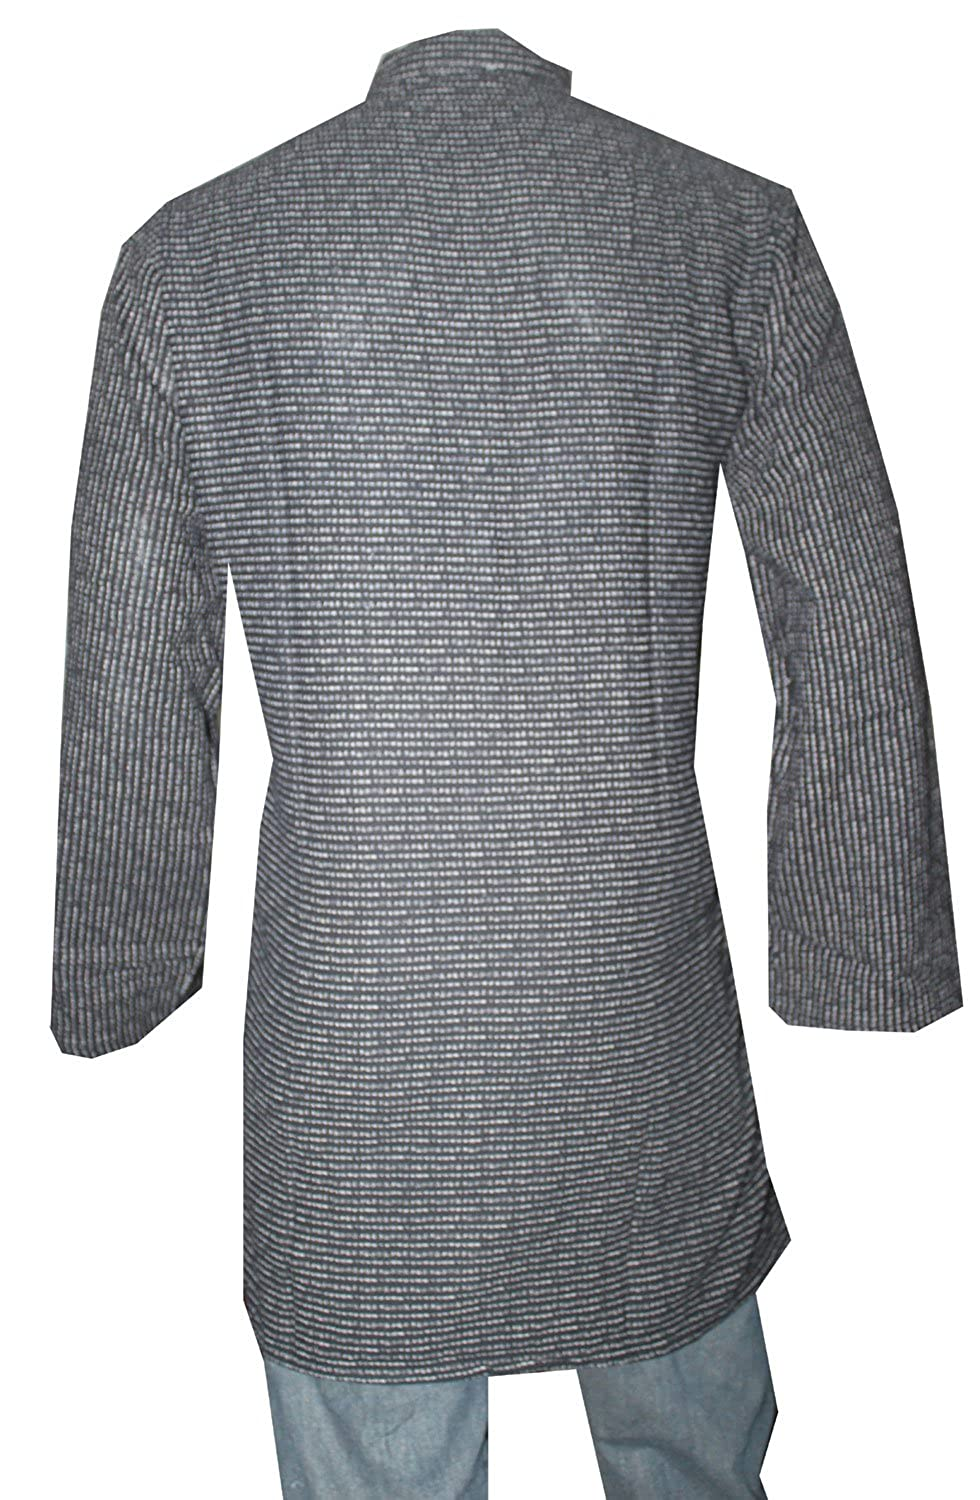 Lakkar Havali Indian 100/% Pure Cotton Men/'s Shirt Loose Fit Shirt Kurta Strips Print Grey Color